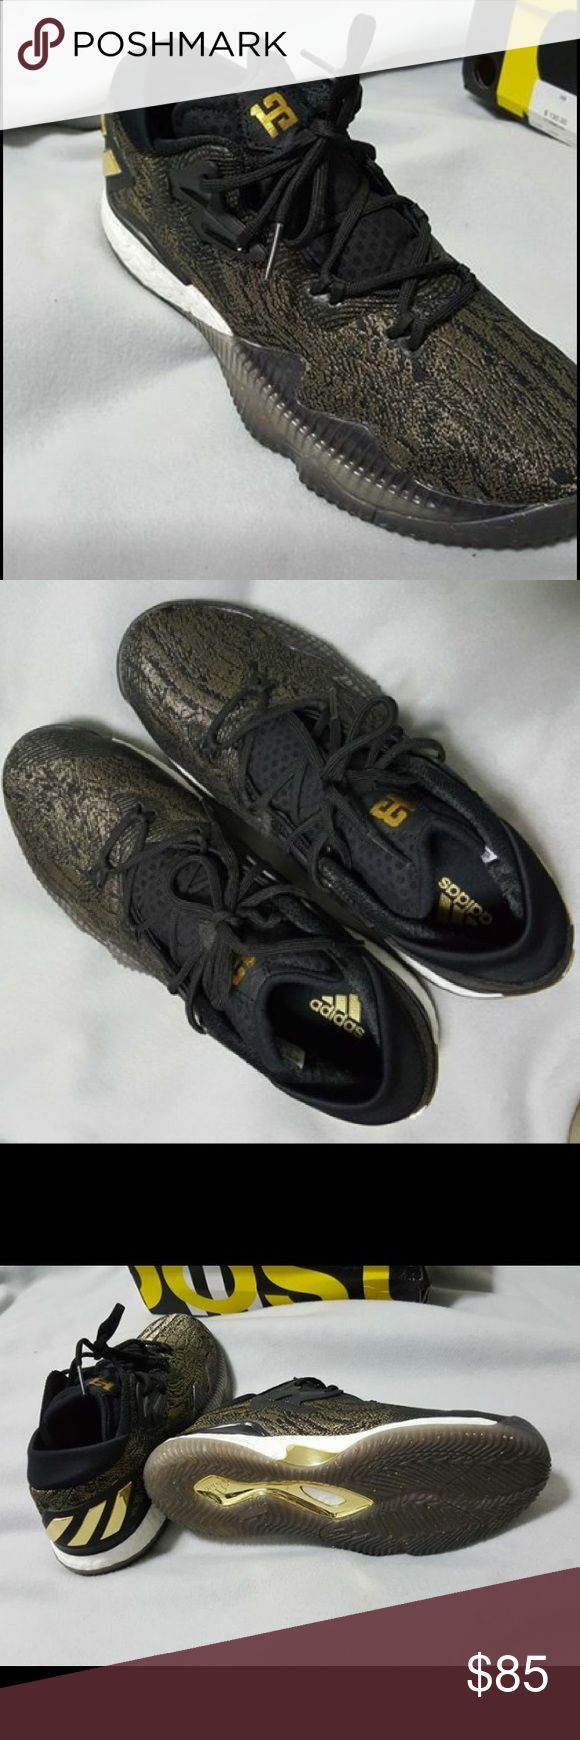 Adidas crazy light 2016 Has boost technology, great basketball or casual shoe, The condition is 9/10 worn a couple times. The box is damaged Adidas Shoes Sneakers